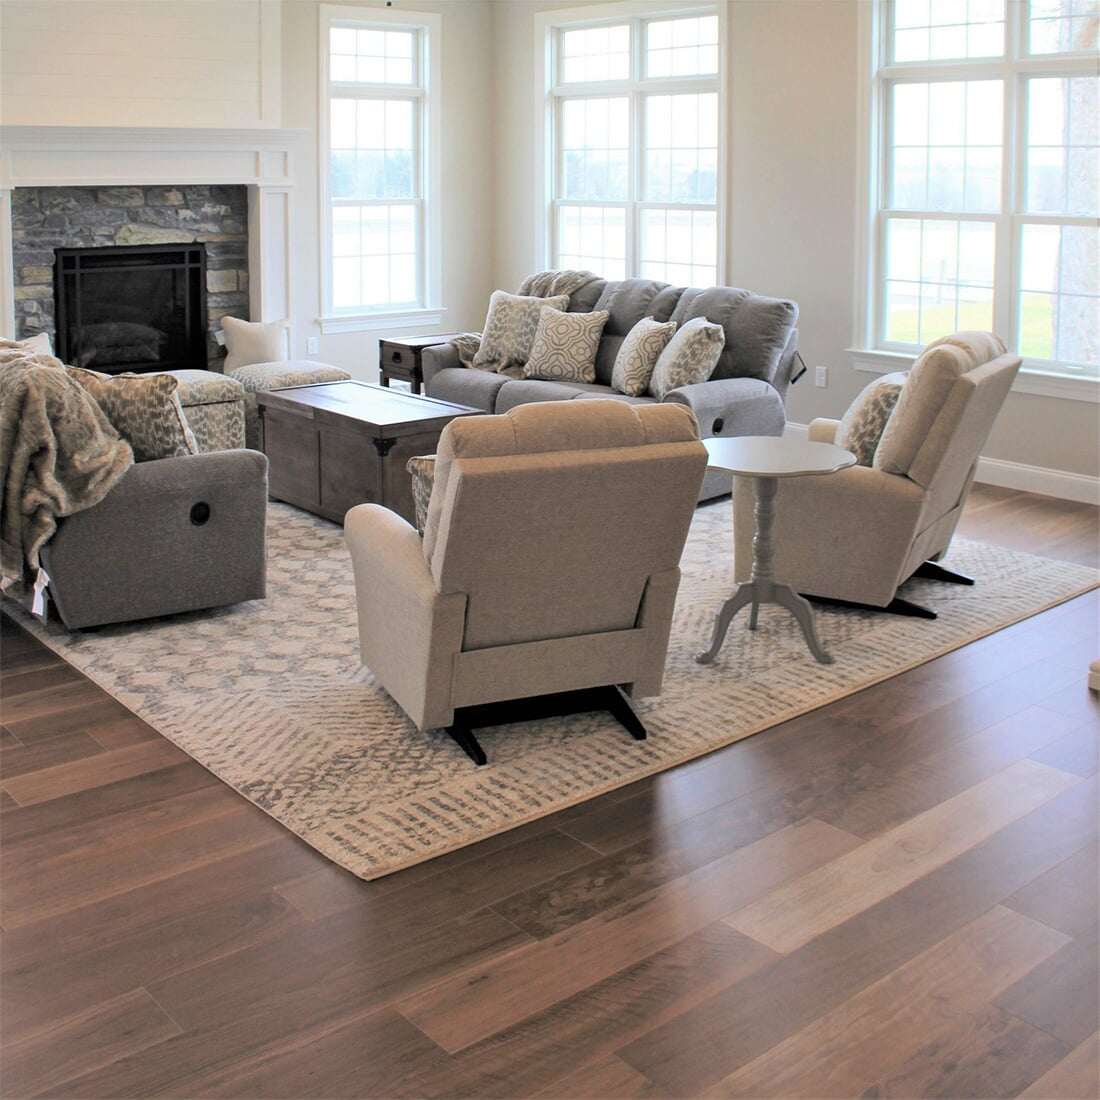 Wood floors in Lebanon, PA from Nolt's Floor Covering, Inc.